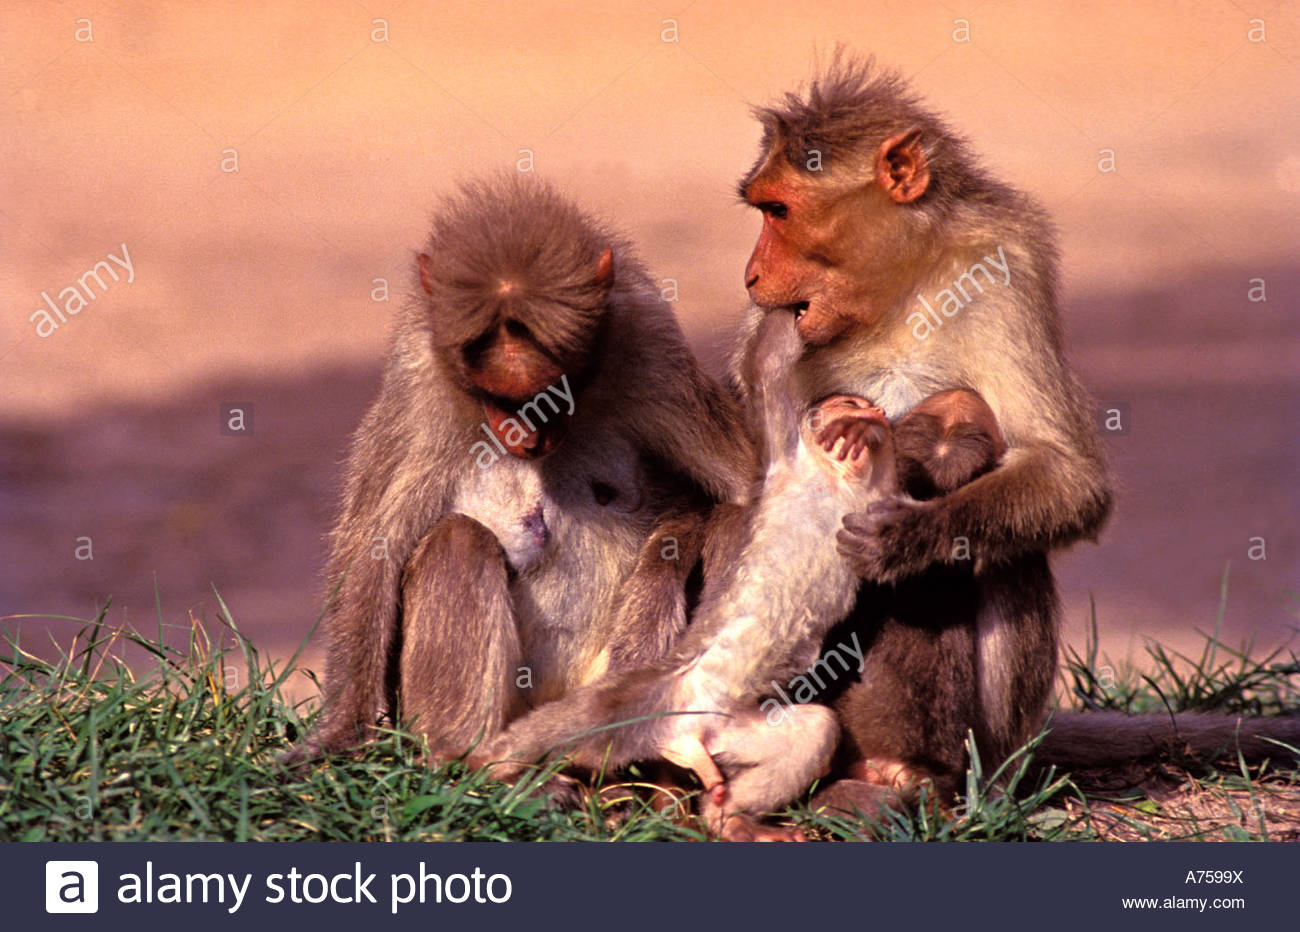 BONNET MACAQUES IN INDIA - Stock Image